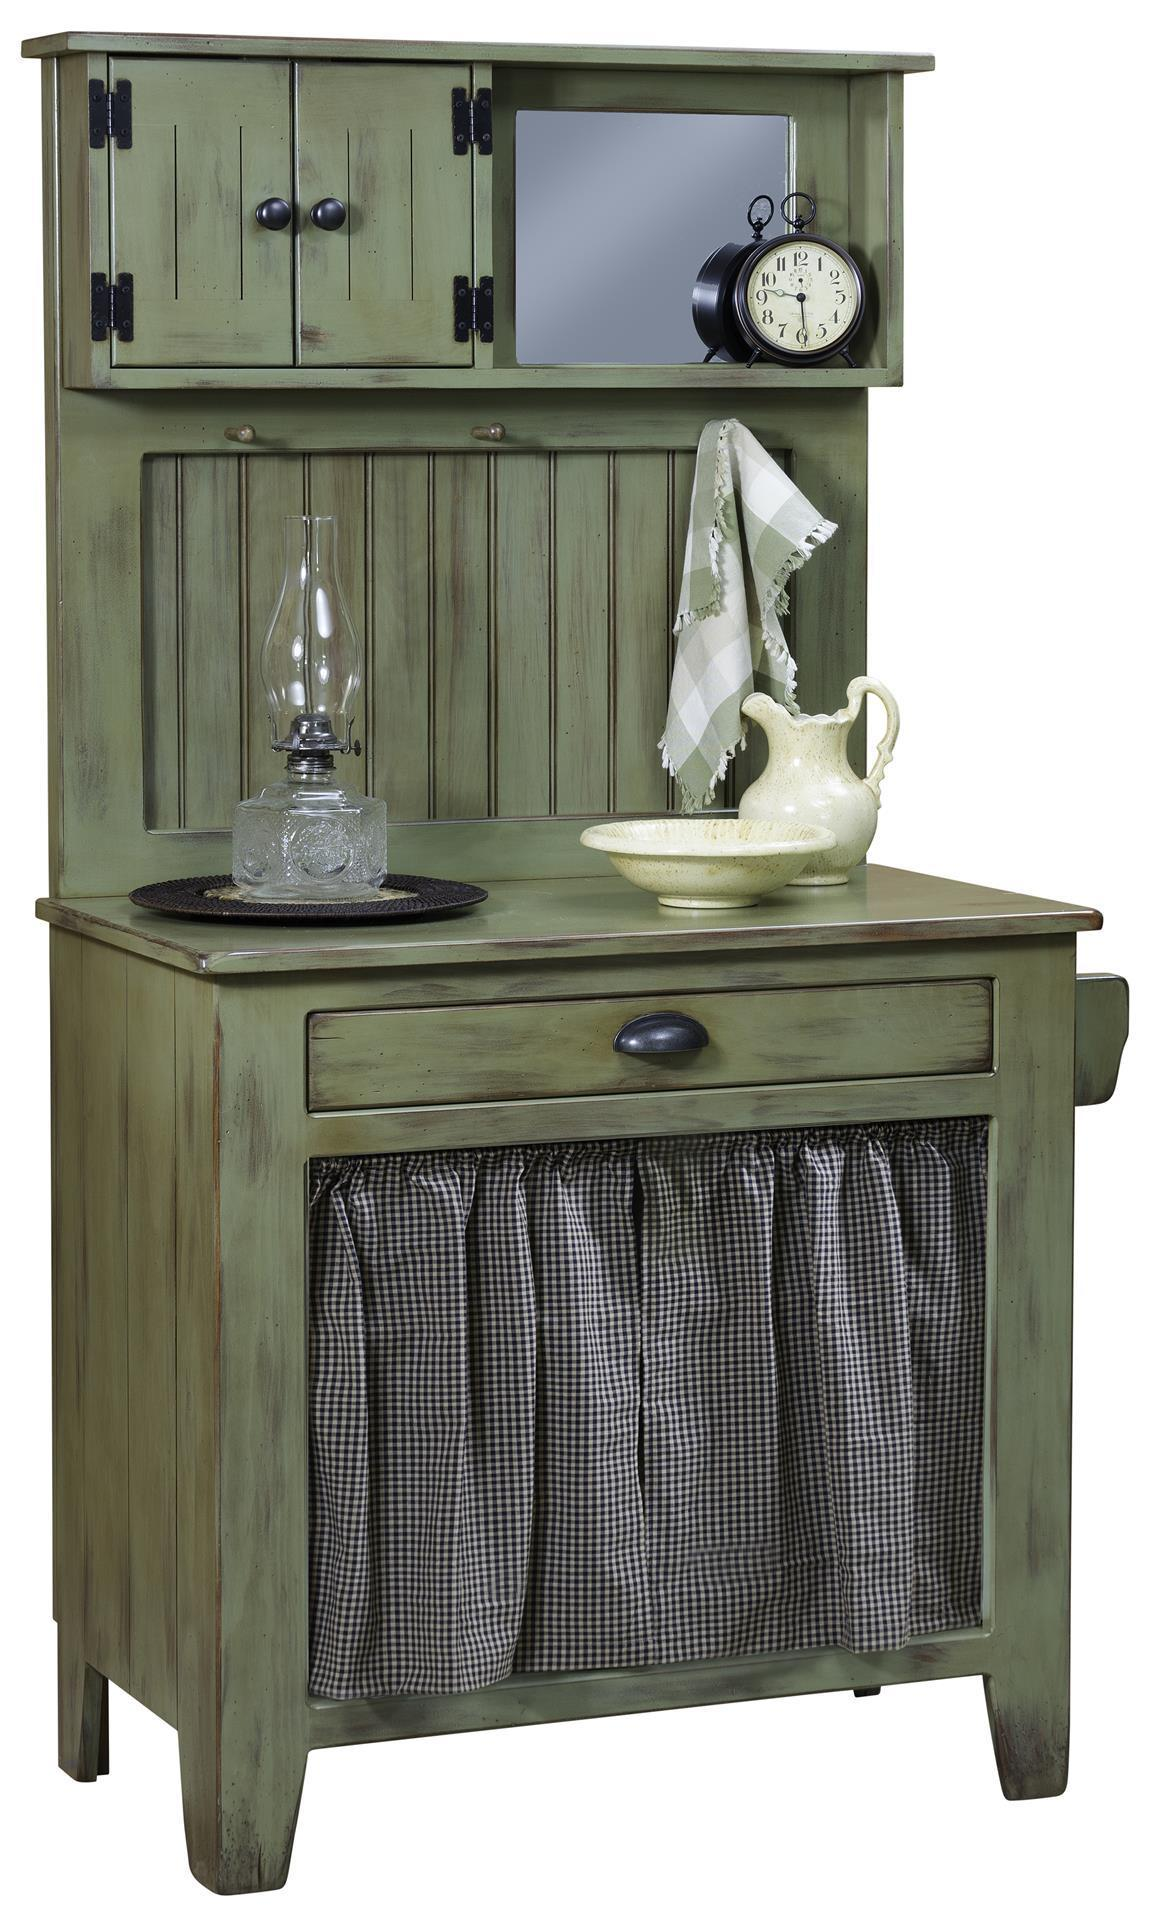 Pine Wood Wash Cabinet from DutchCrafters Amish Furniture